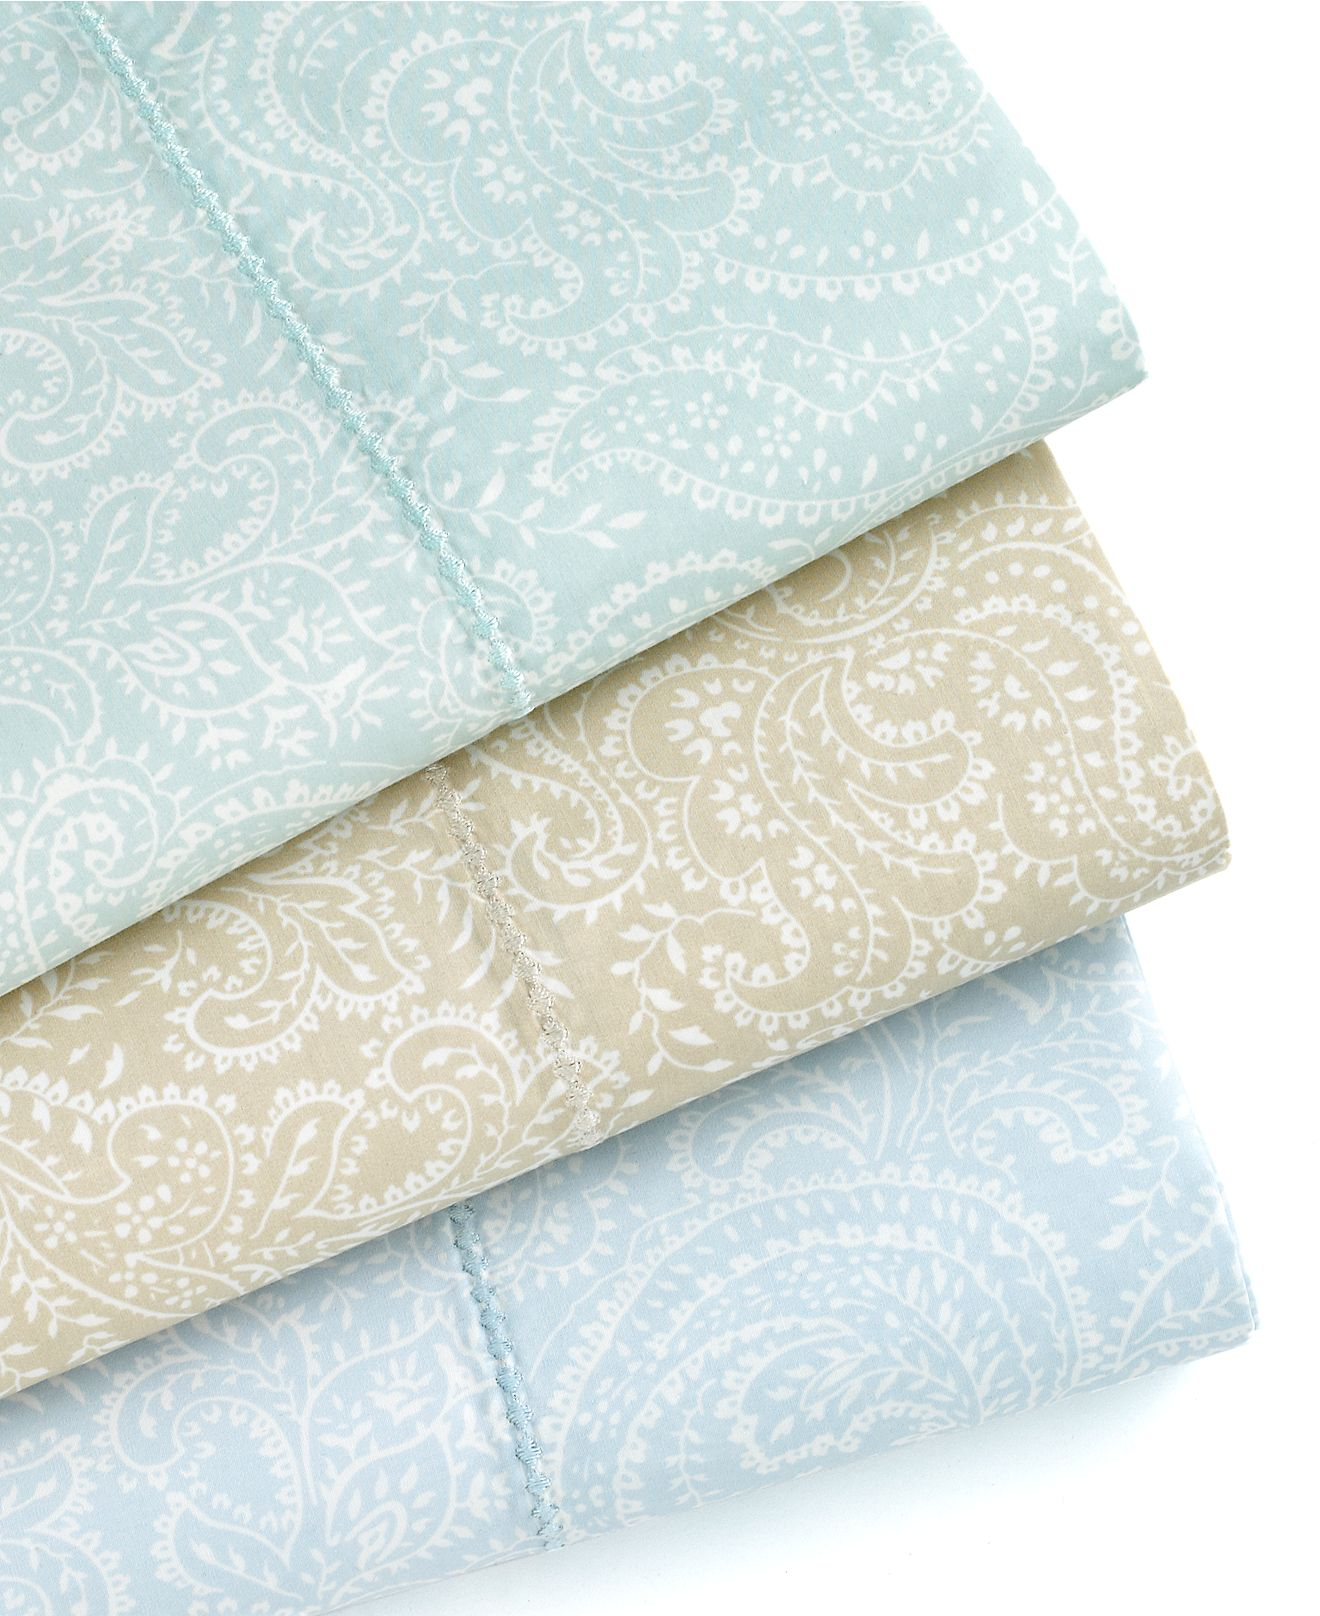 ... STEWART Ainsley Paisley 400 TC Cotton QUEEN Fitted Sheet Pale Blue